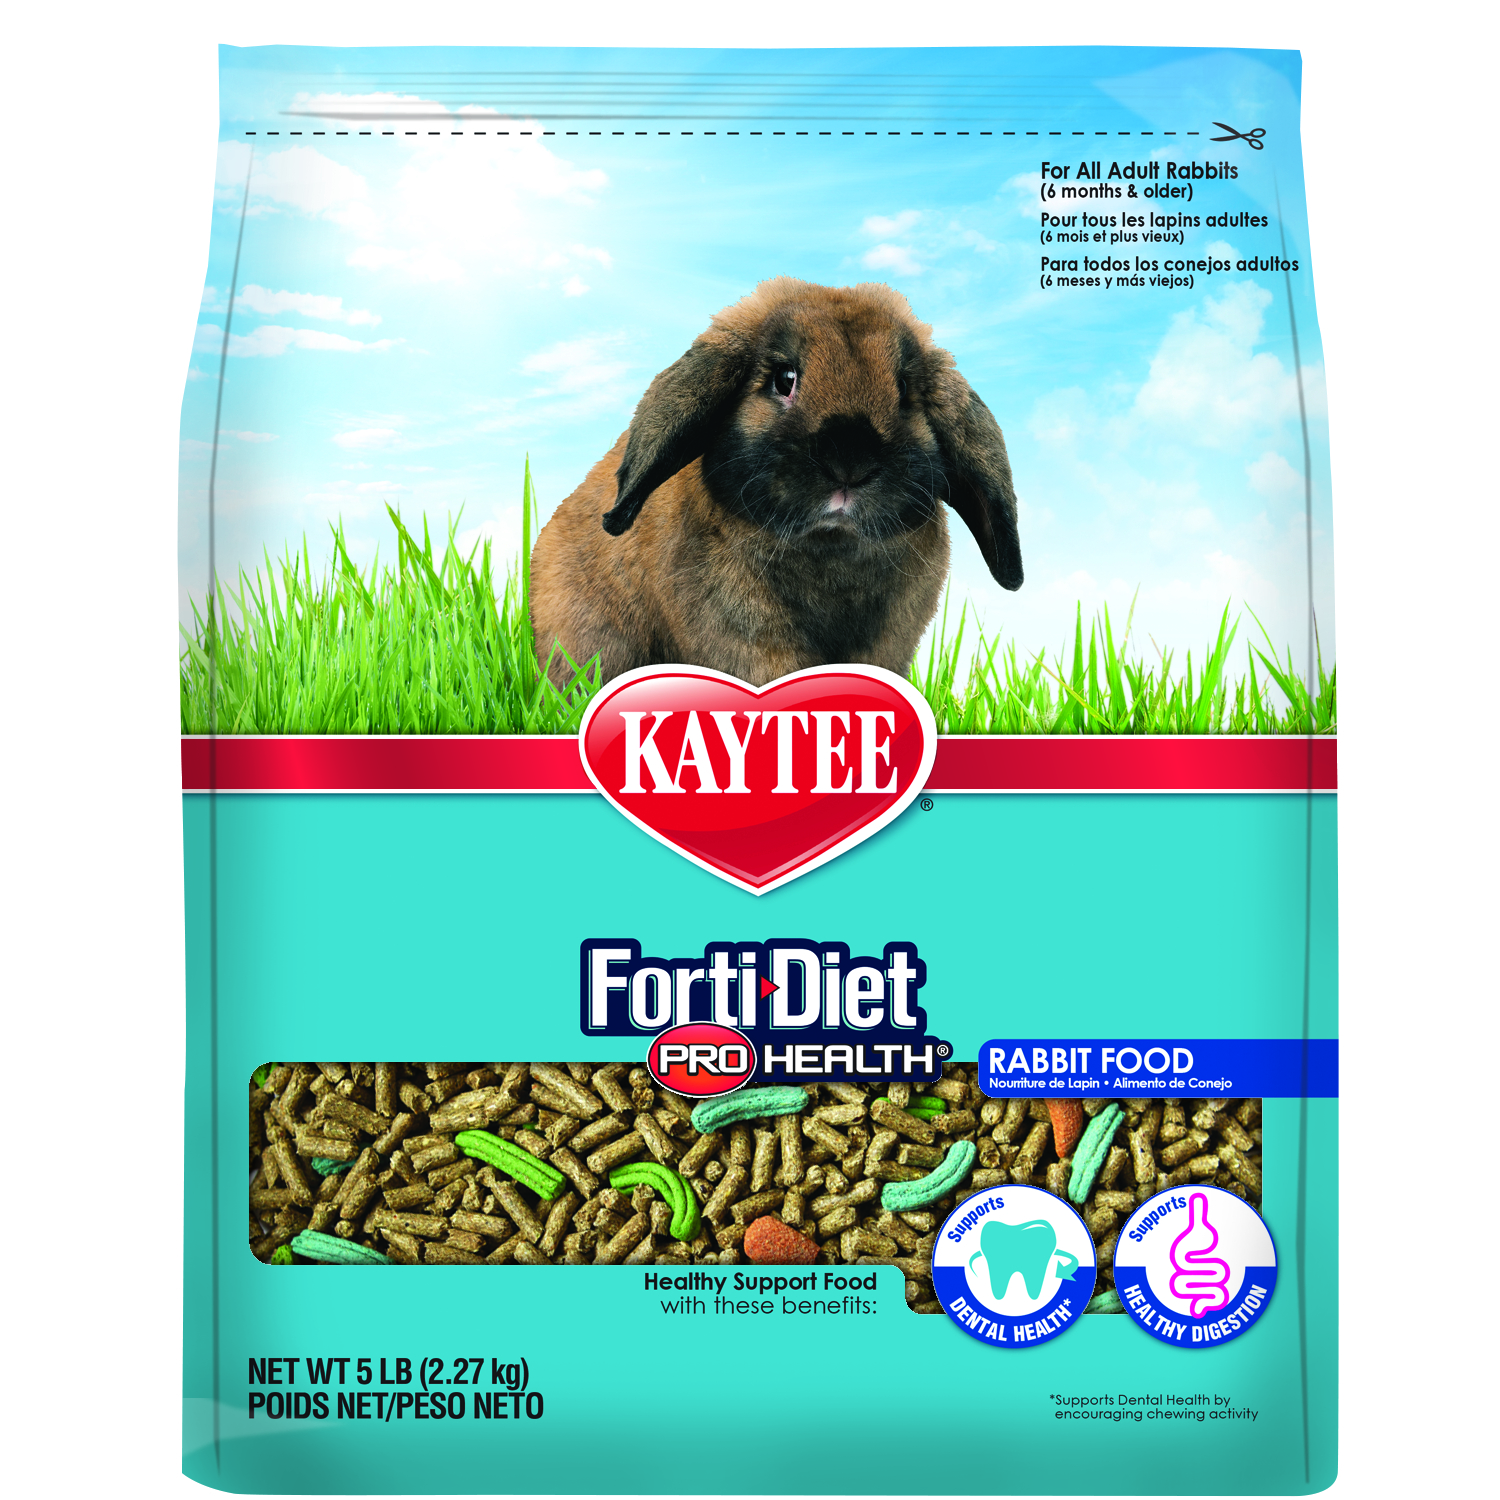 Forti-Diet Pro Health Adult Rabbit Food : What to Feed Your